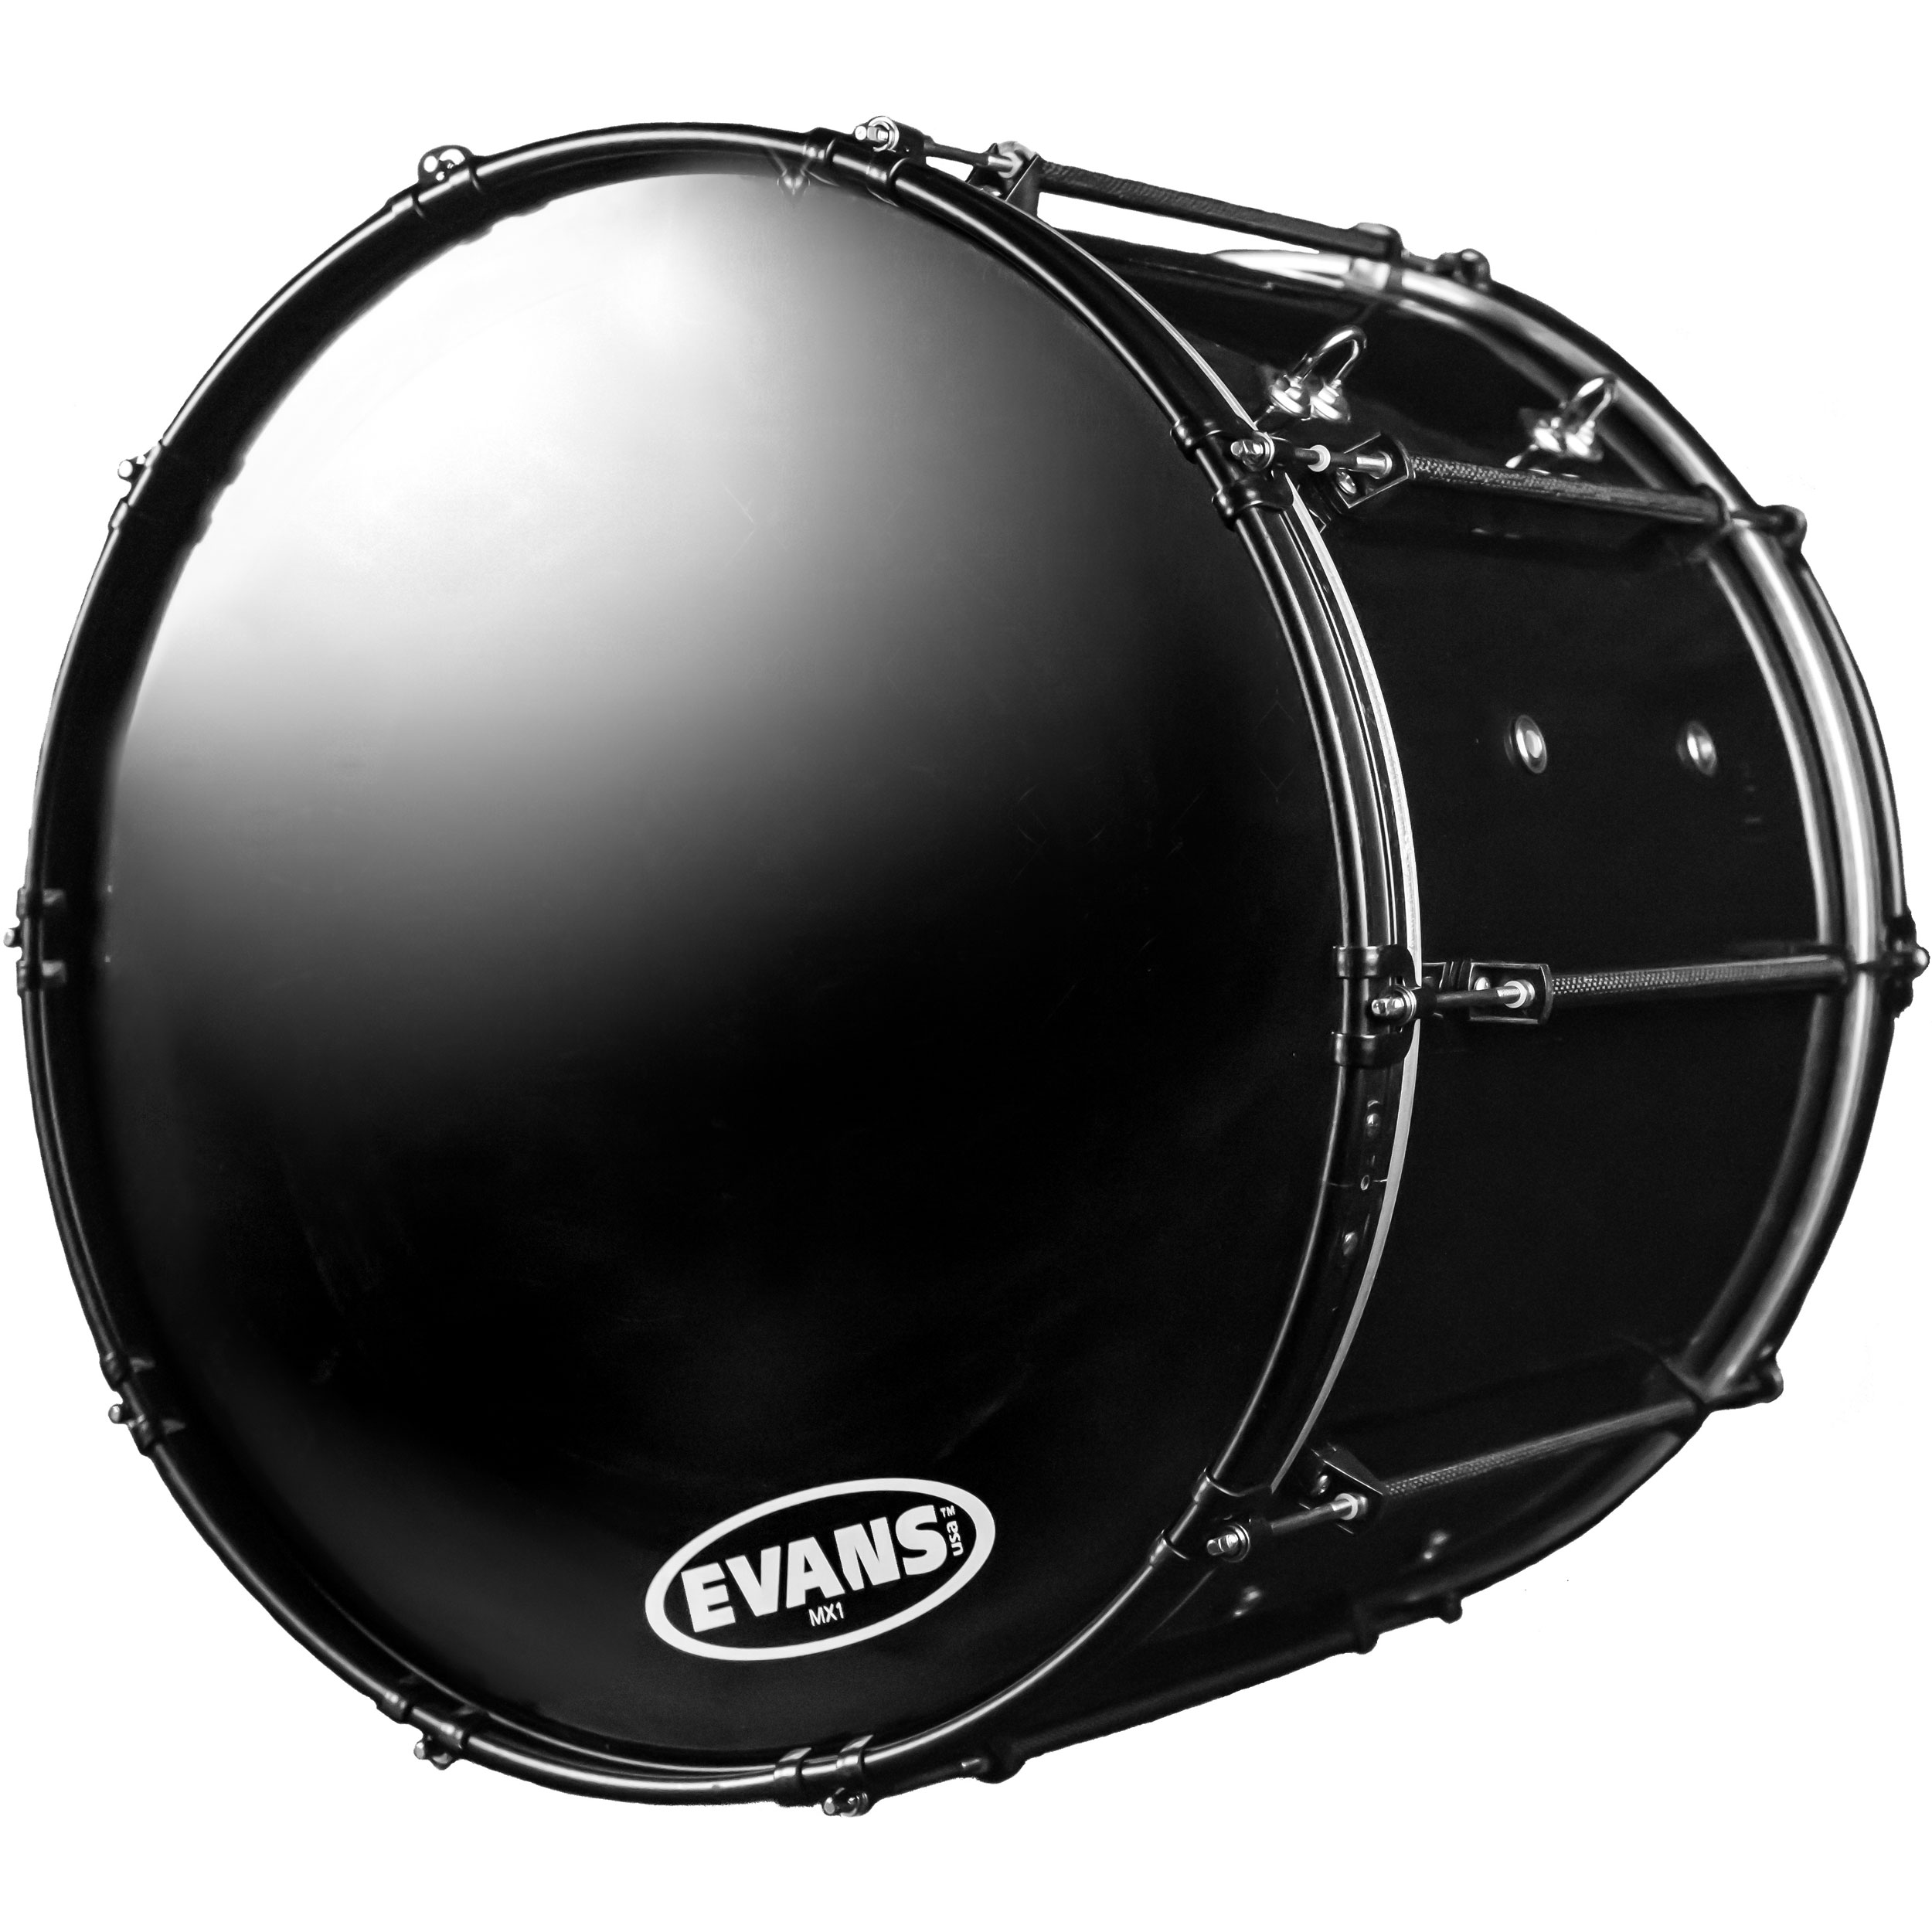 "System Blue 30"" Professional Series Marching Bass Drum"